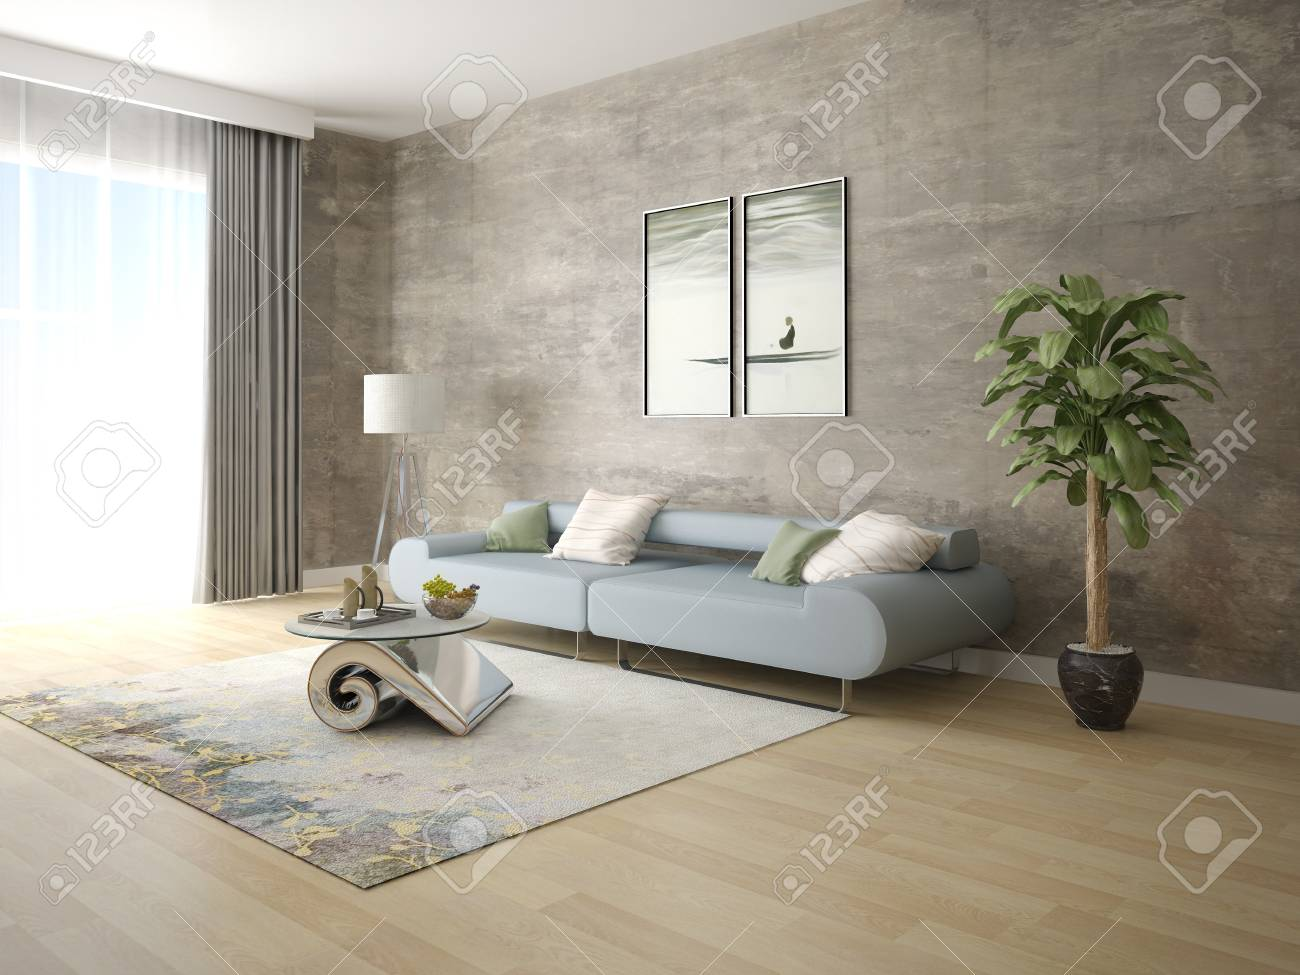 123RF.com & Mock up a trendy living room with a stylish comfortable sofa..